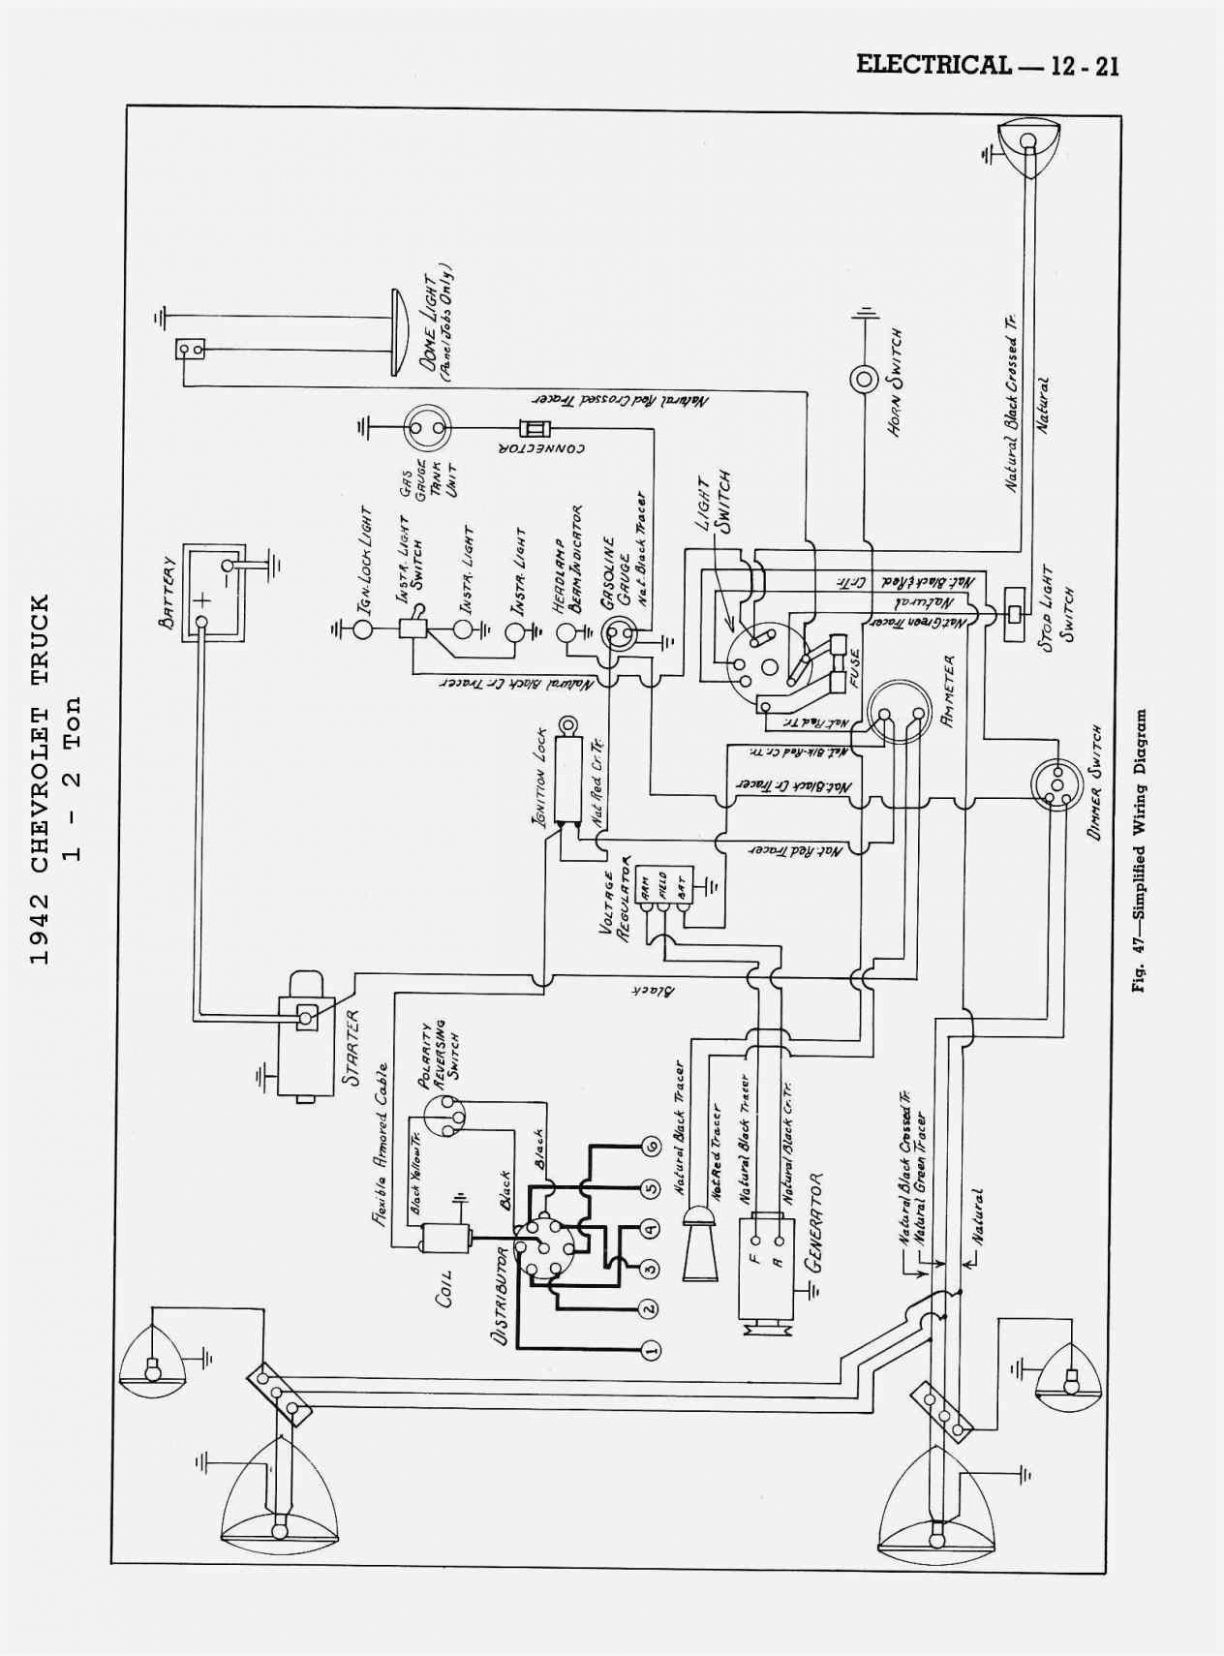 Ducane Furnace Wiring Diagram For Humidifier